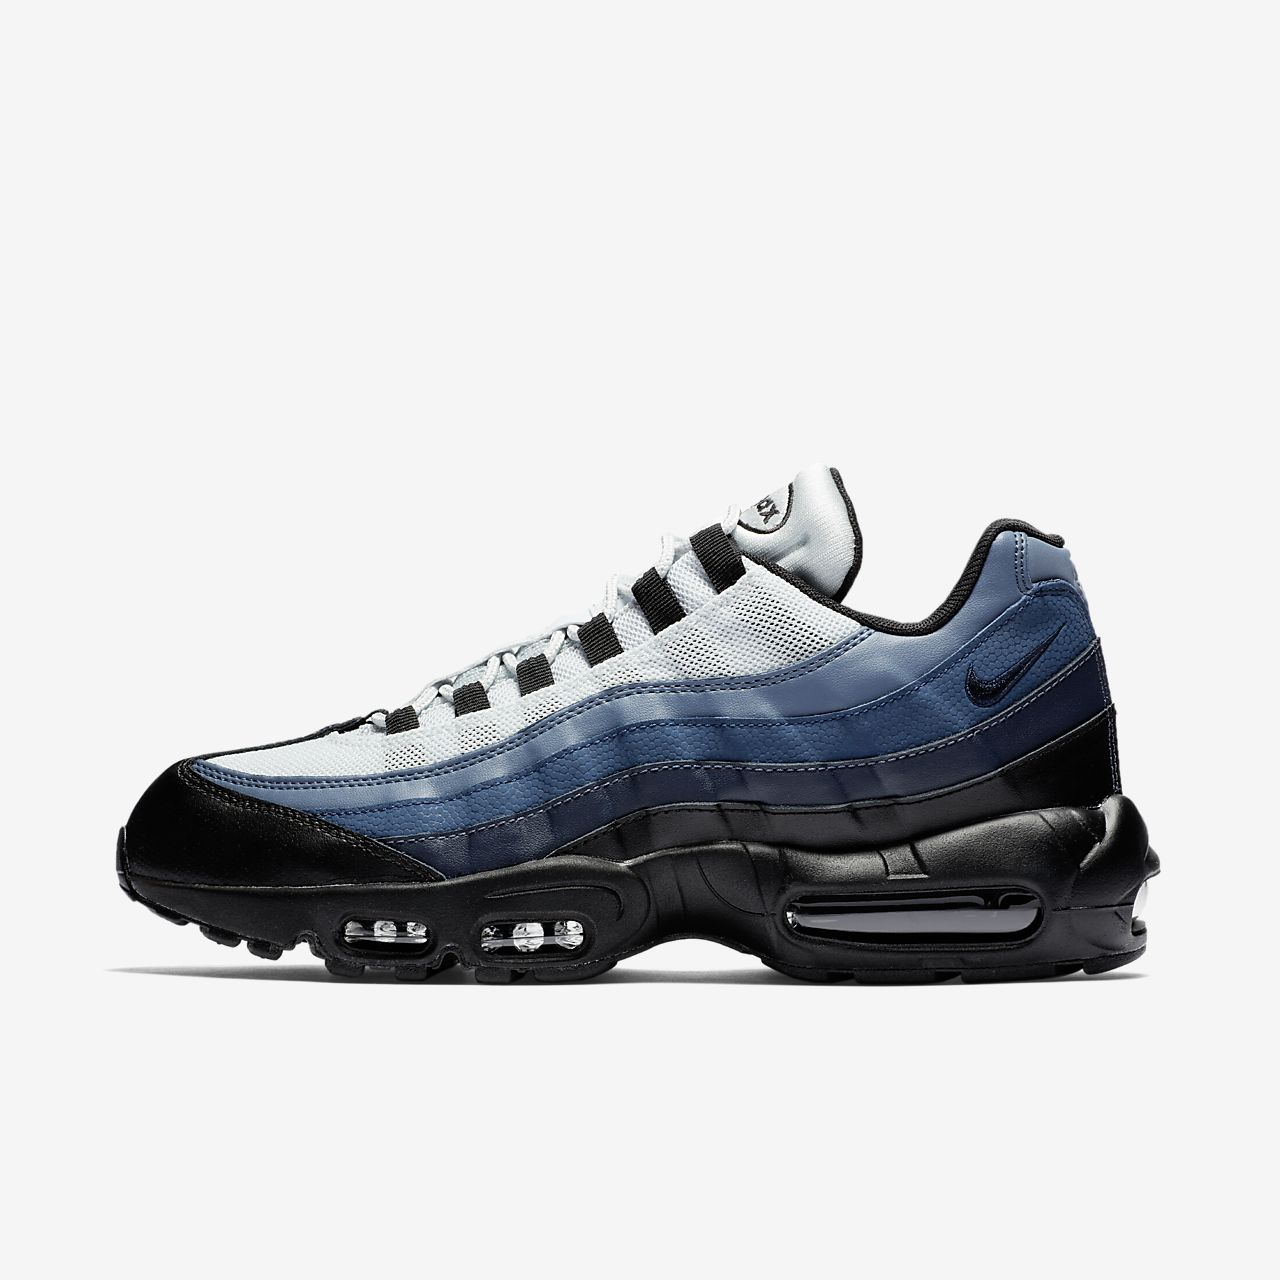 Images De Nike Air Max 95